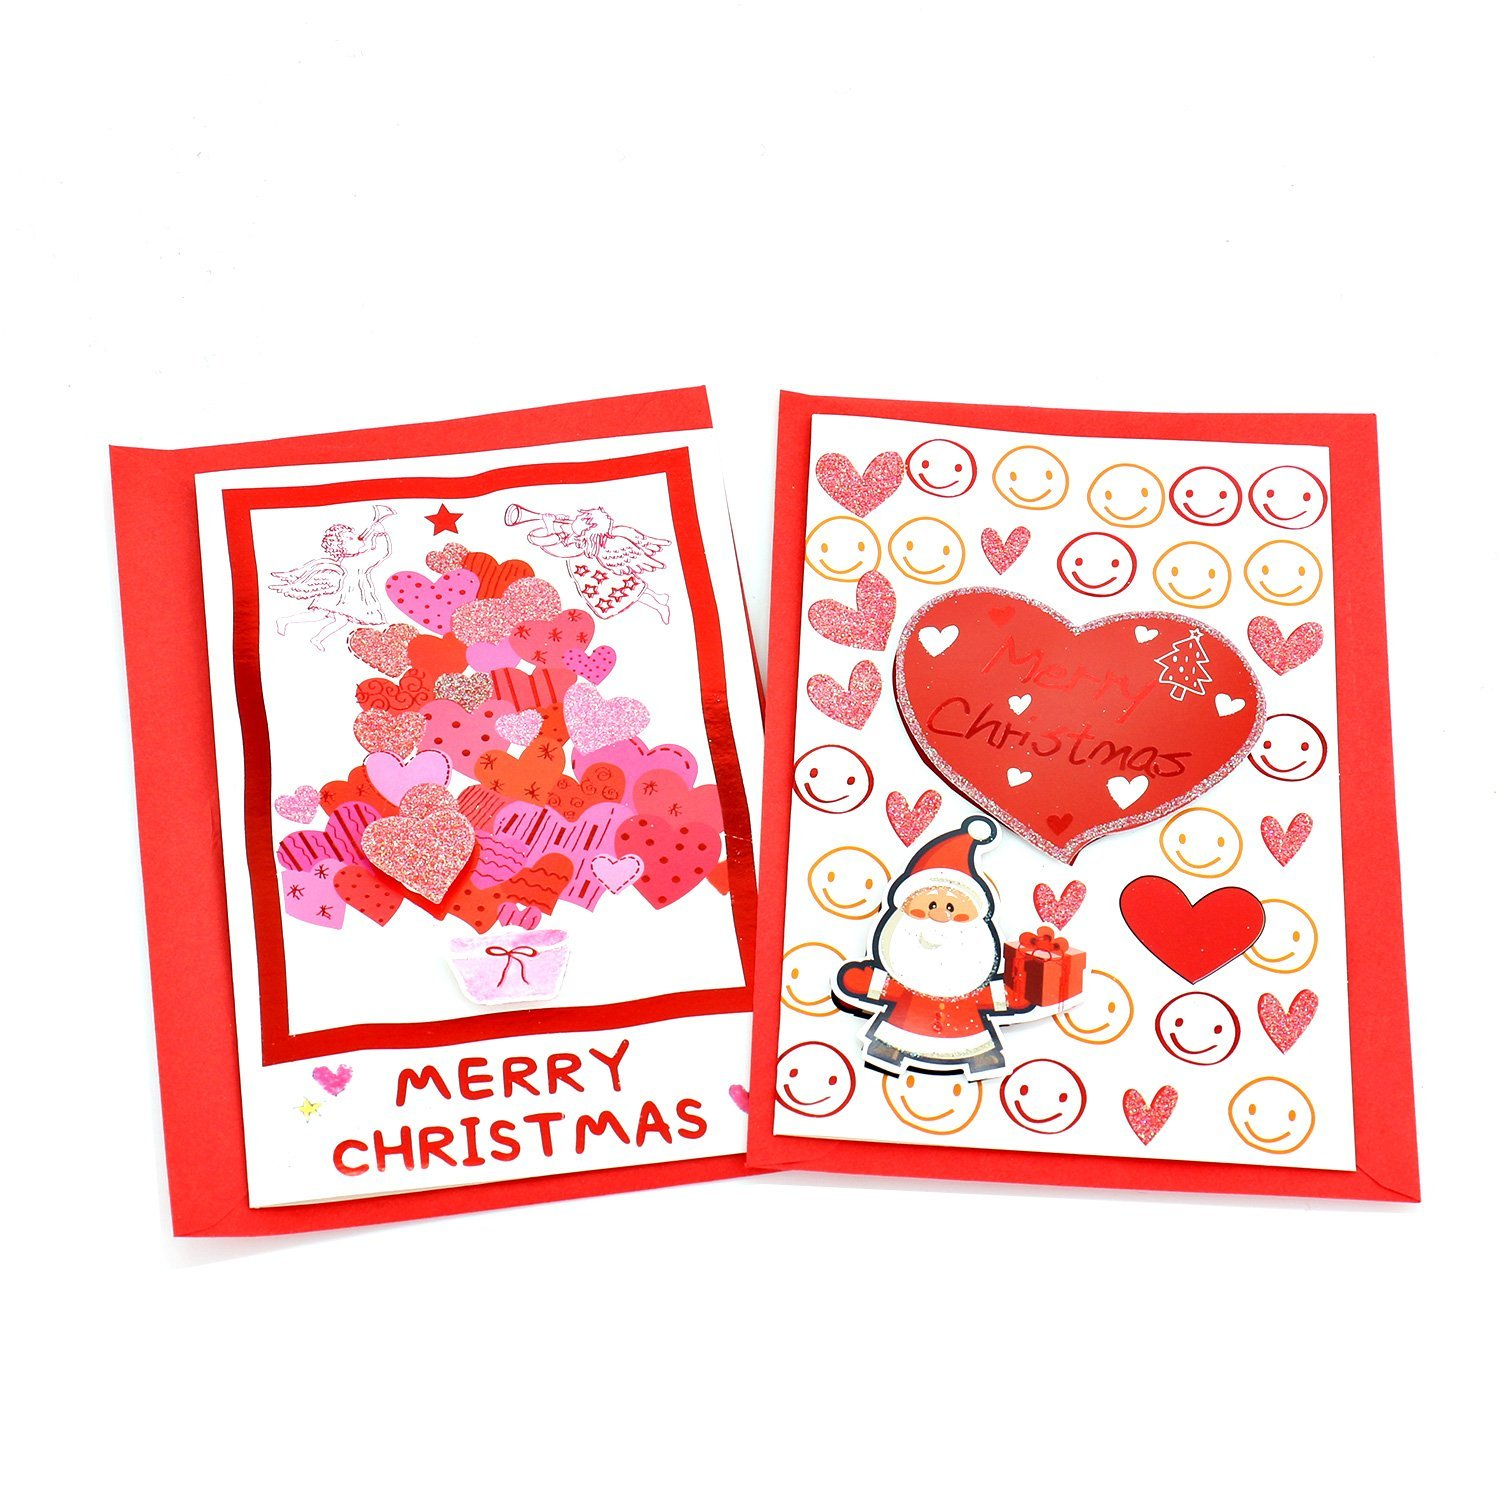 Buy Love Greeting Cards Merry Christmas Cards With Red Envelopes